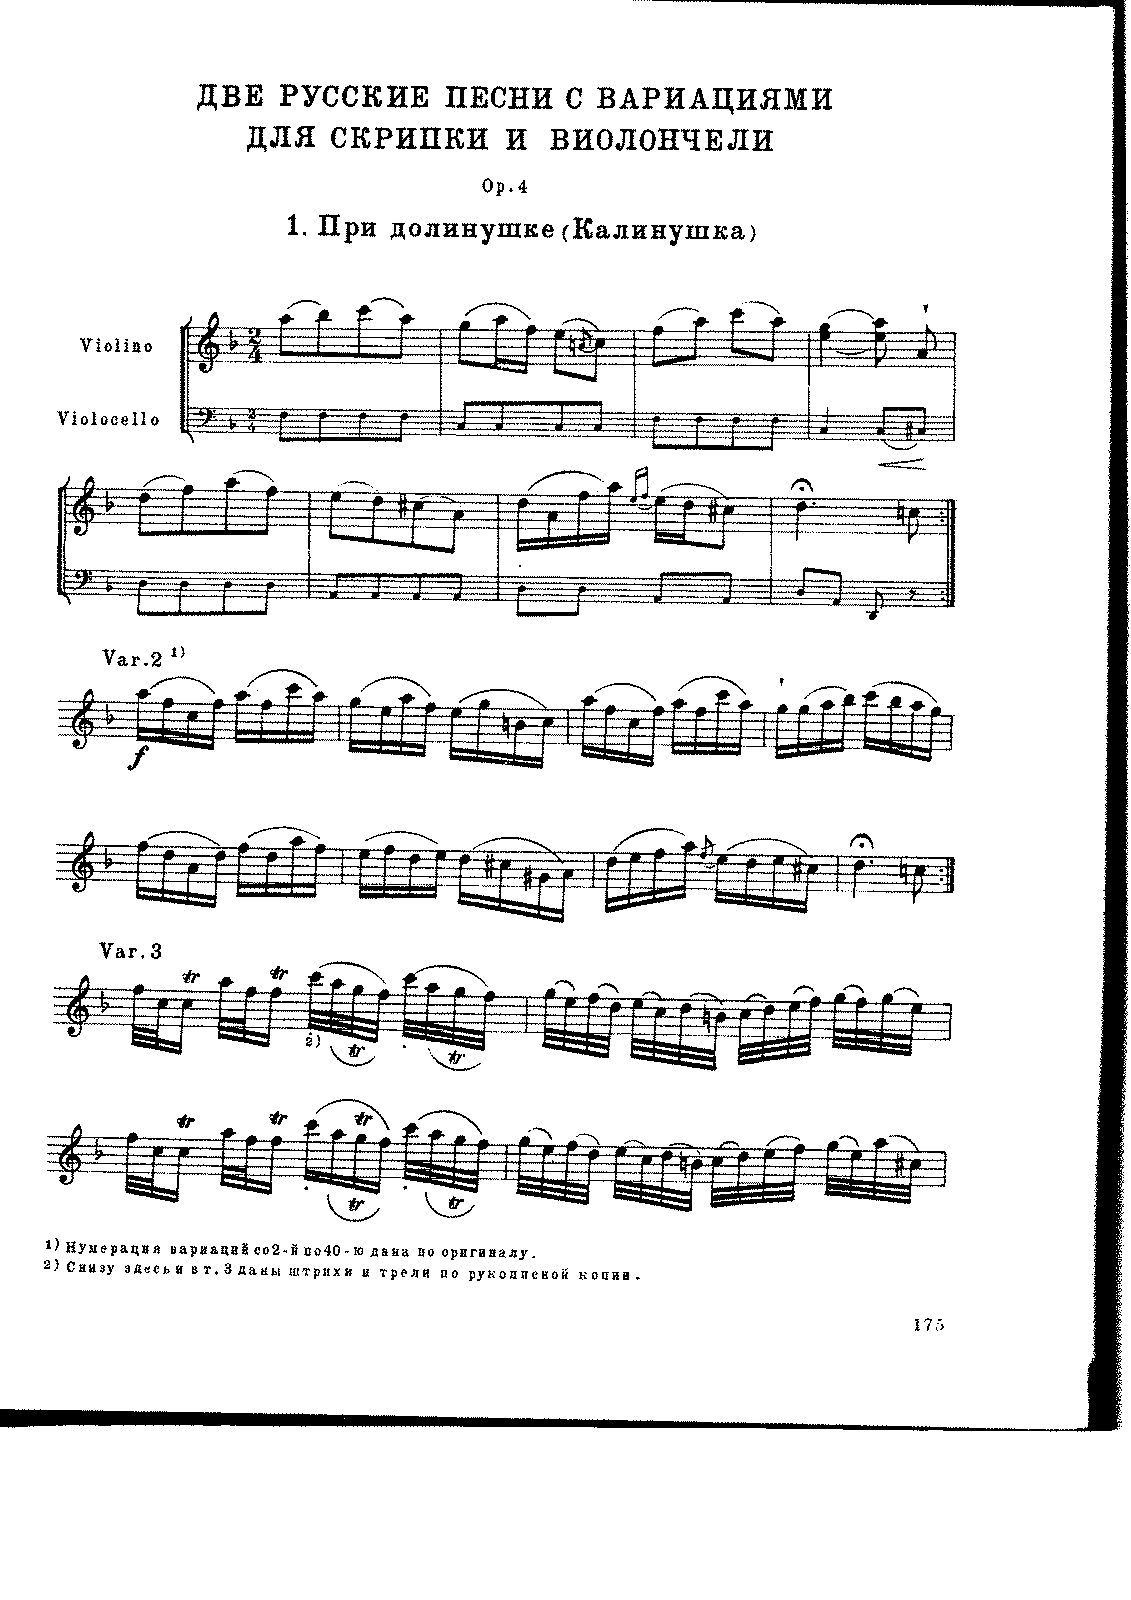 PMLP657416-Khandoshkin Op. 4 - 2 songs for violin and cello.PDF